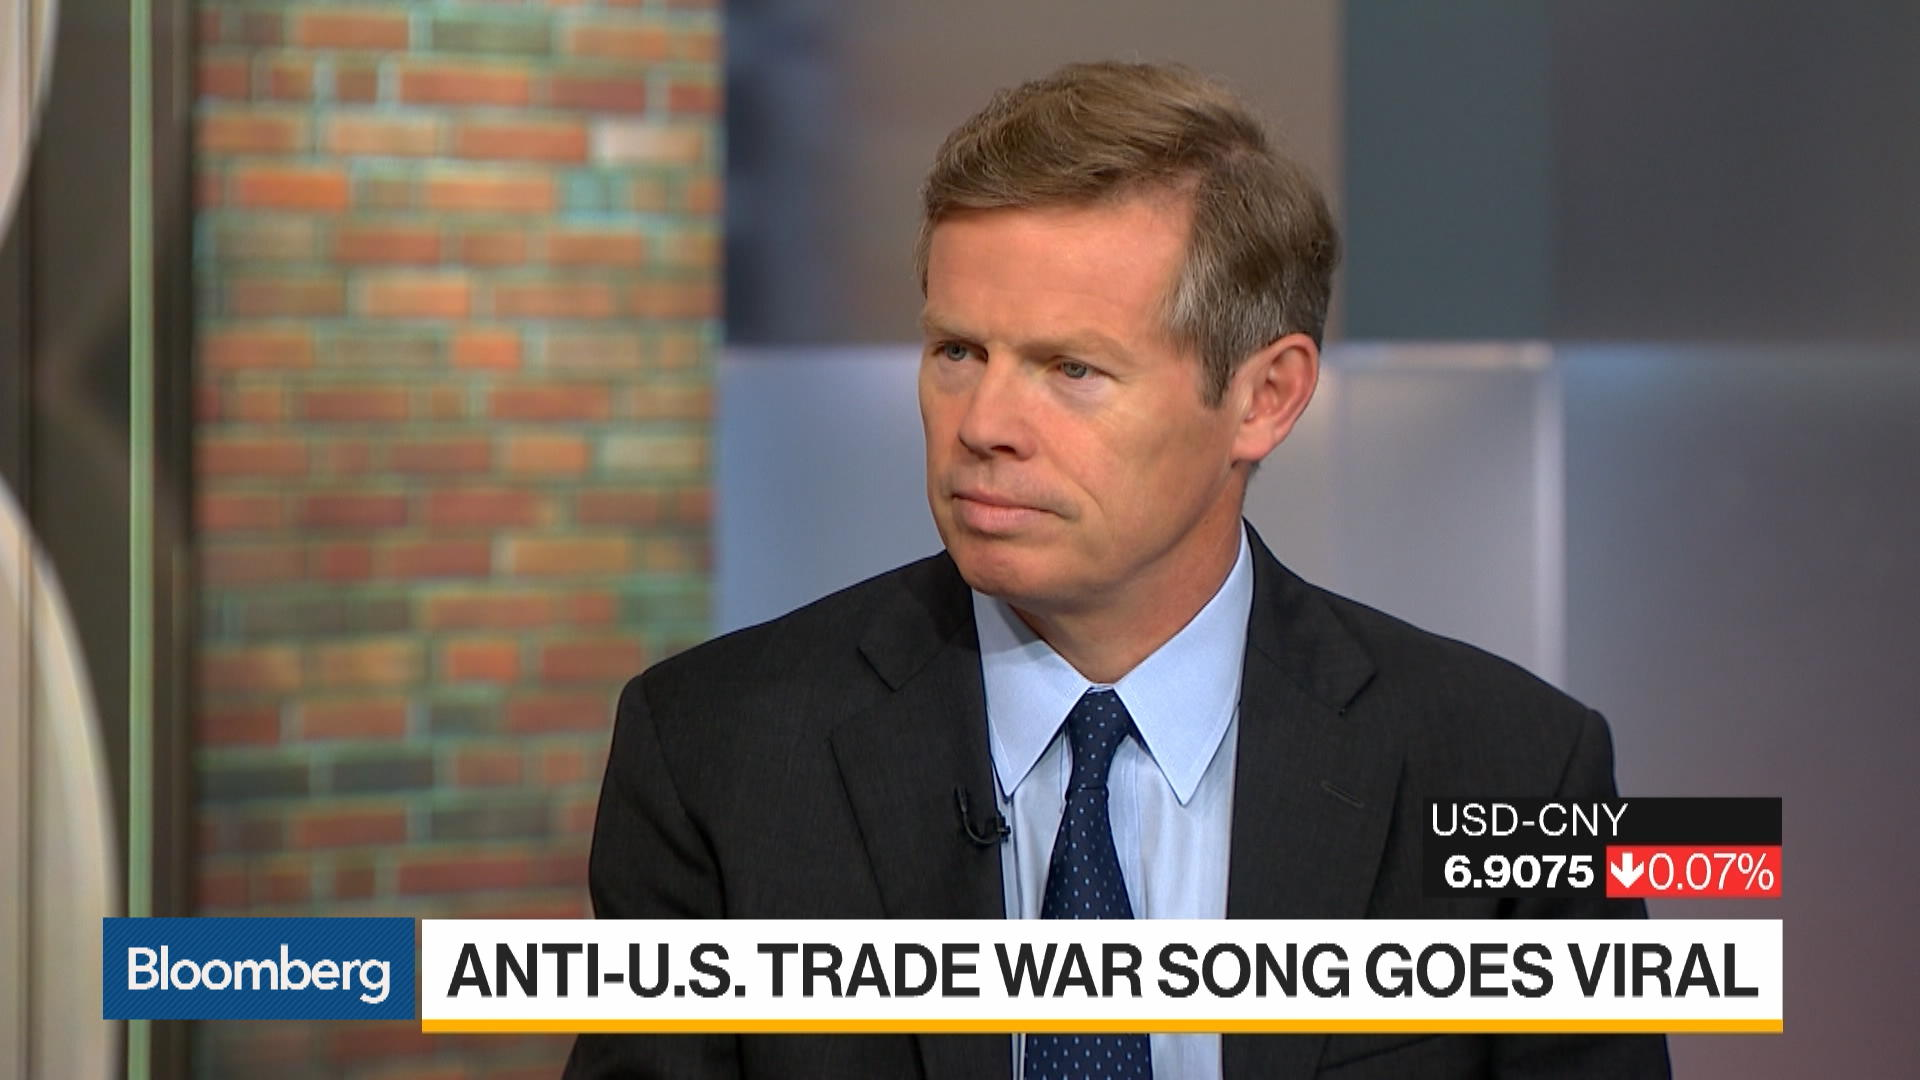 Trade Wars Are So Disastrous They Burn Themselves Out: JPM's Kelly